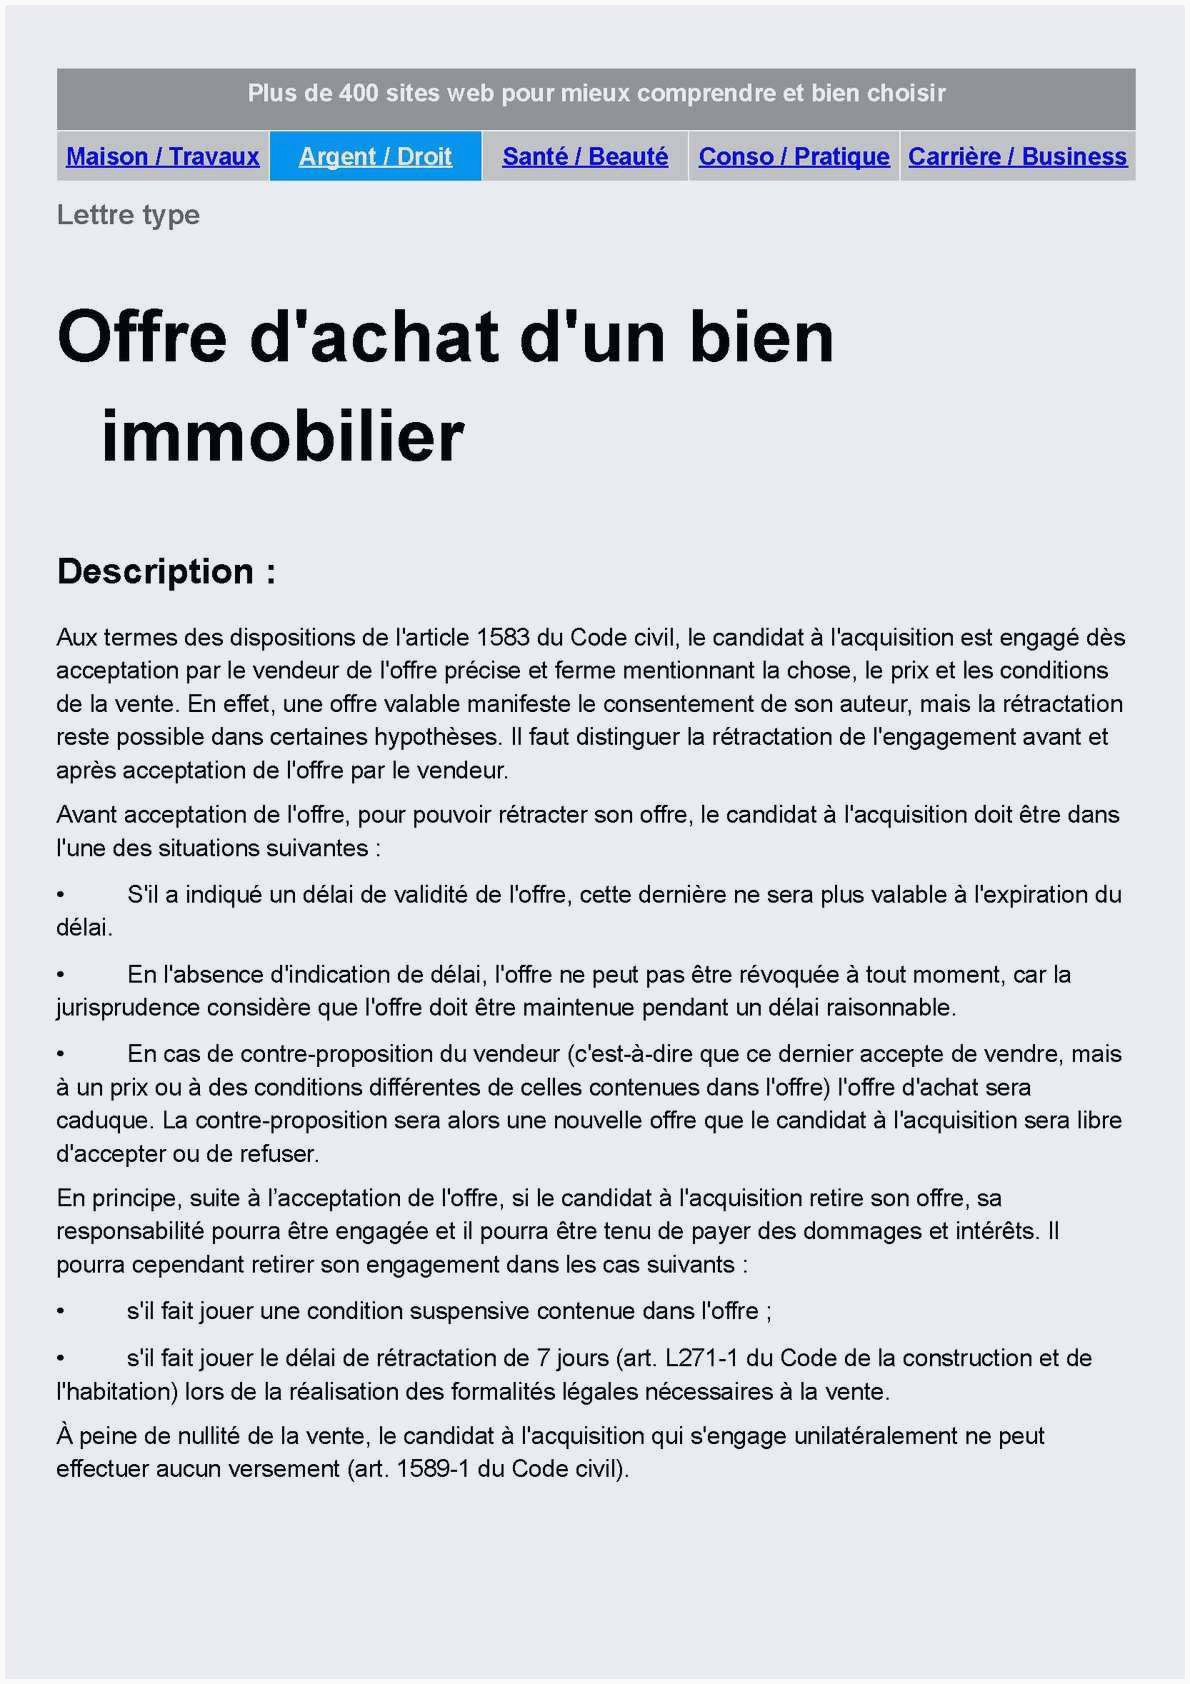 Lettre De Motivation Bts Profession Immobiliere Exemple Lettre De Motivation Immobilier Exemple Lettre De Motivation